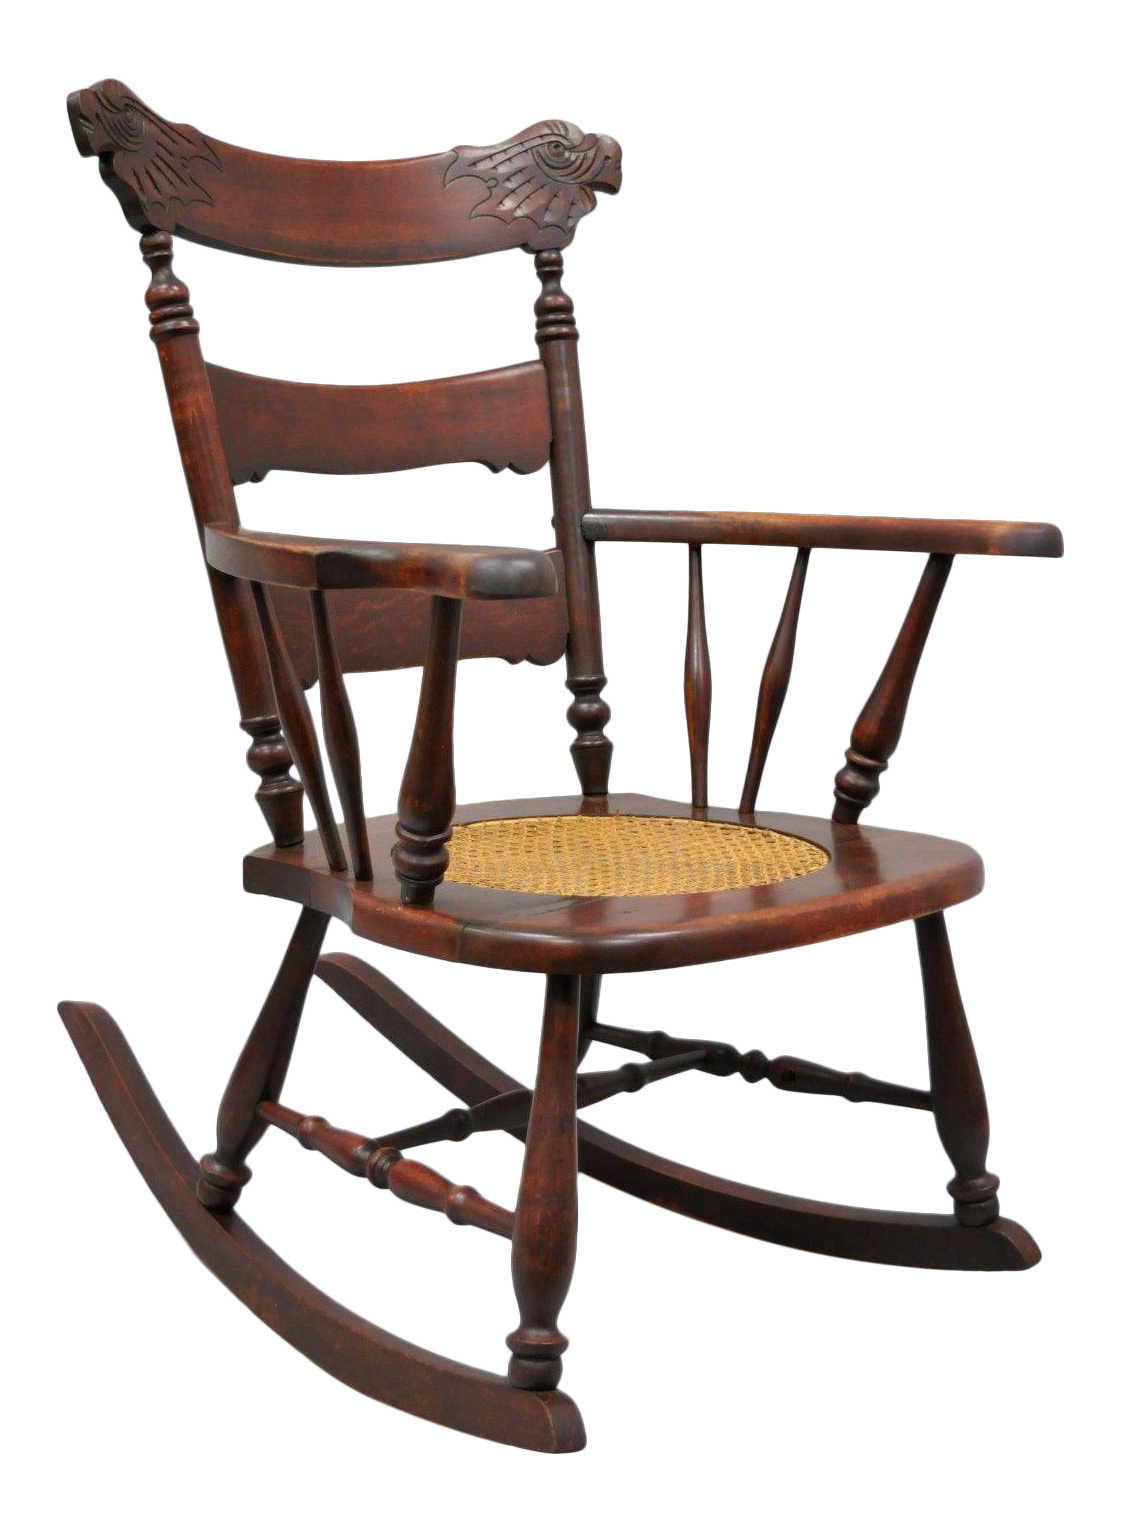 Ordinaire Antique Carved Mahogany Eagle Rocking Chair Rocker Victorian Figural Cane  Seat